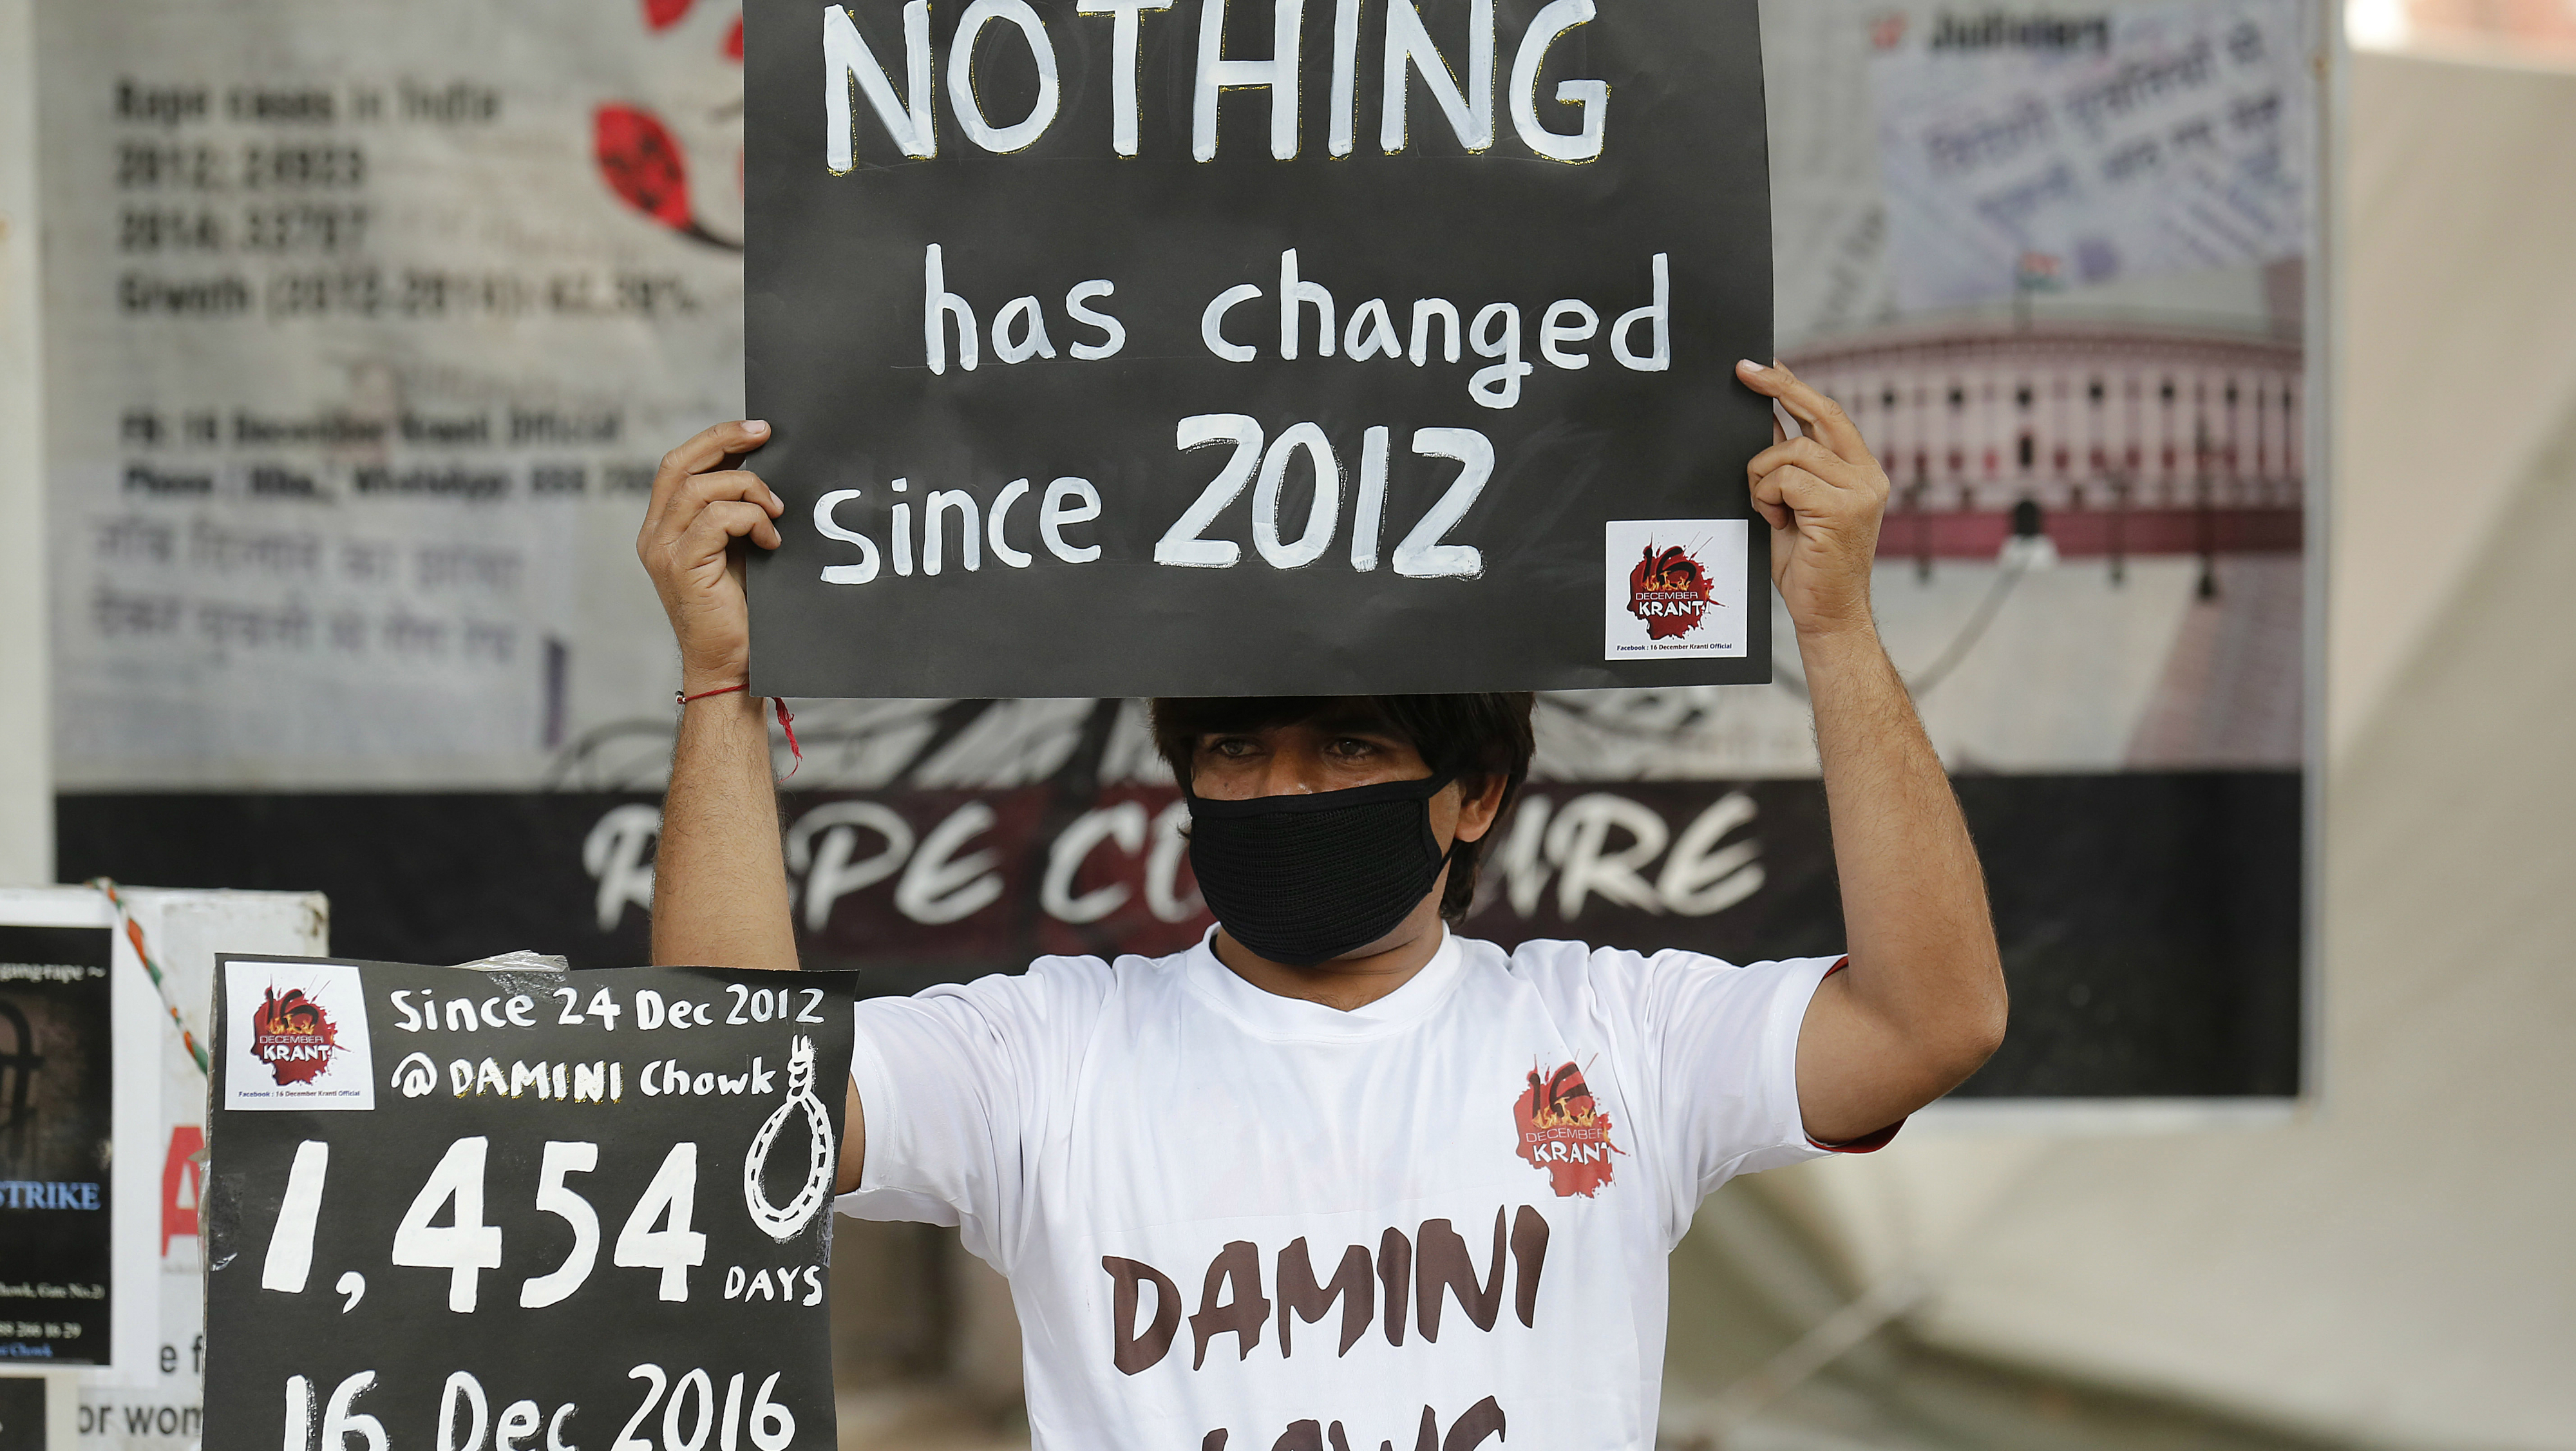 epa05678228 An Indian activist holds placards as he takes part in a protest to mark fourth anniversary of the Delhi gang rape crime, at Jantar Mantar in New Delhi, India, 16 December 2016. The protest marks the fourth year since the fatal gang rape of a 23-year-old student on a moving bus, which provoked widespread outrage and led to stricter laws against sexual assault. EPA/RAJAT GUPTA